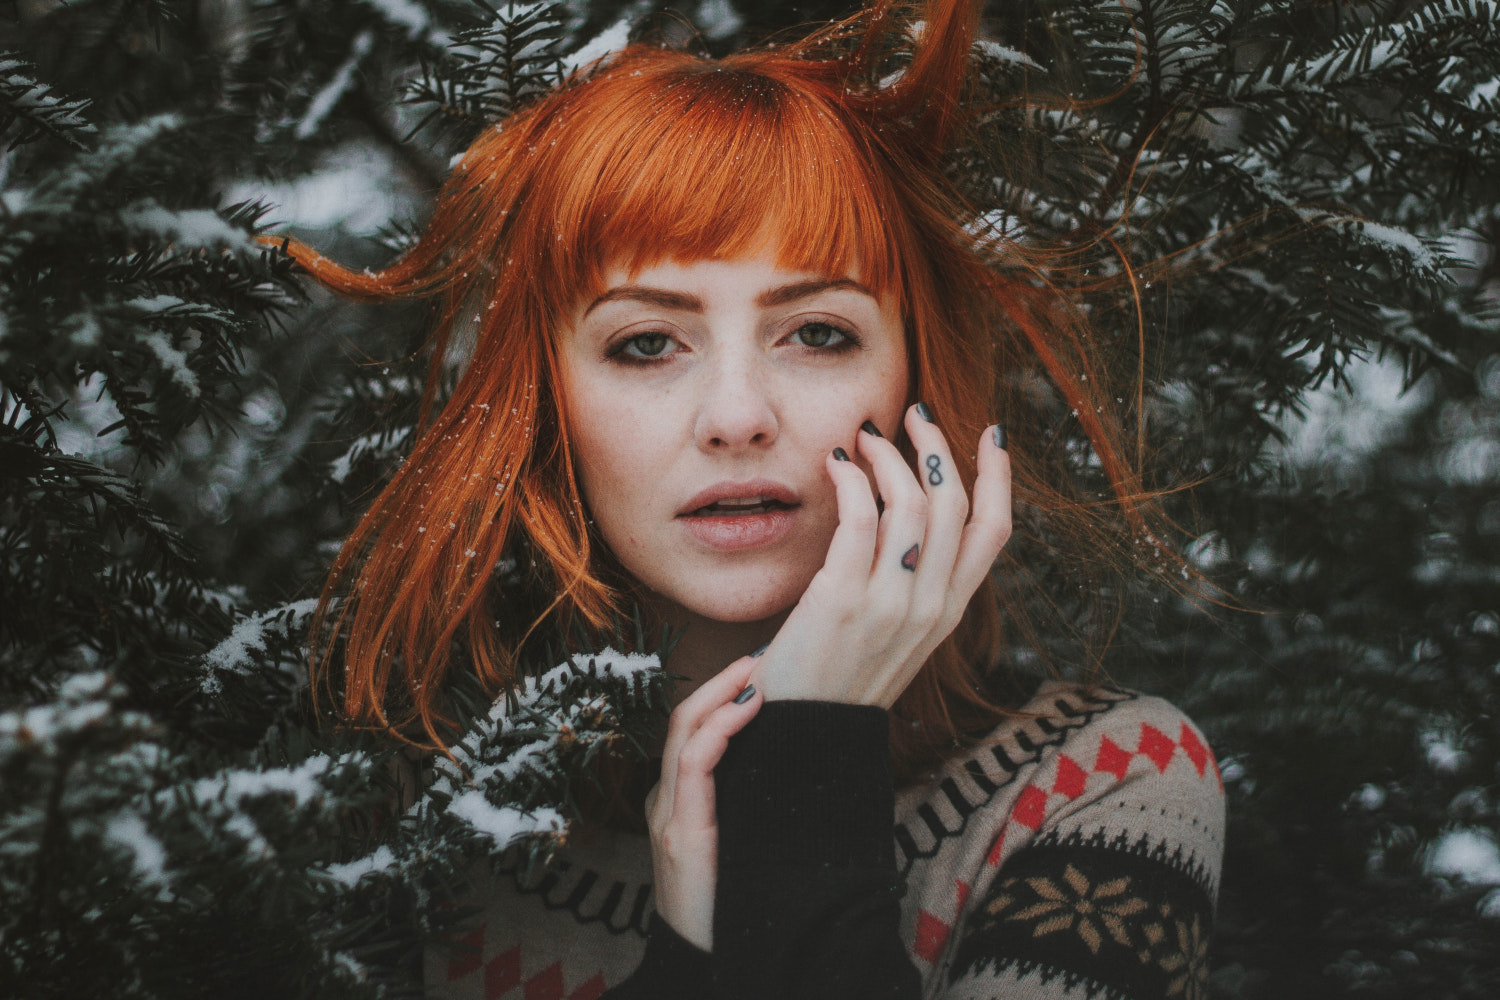 cute ginger girl with loose hair